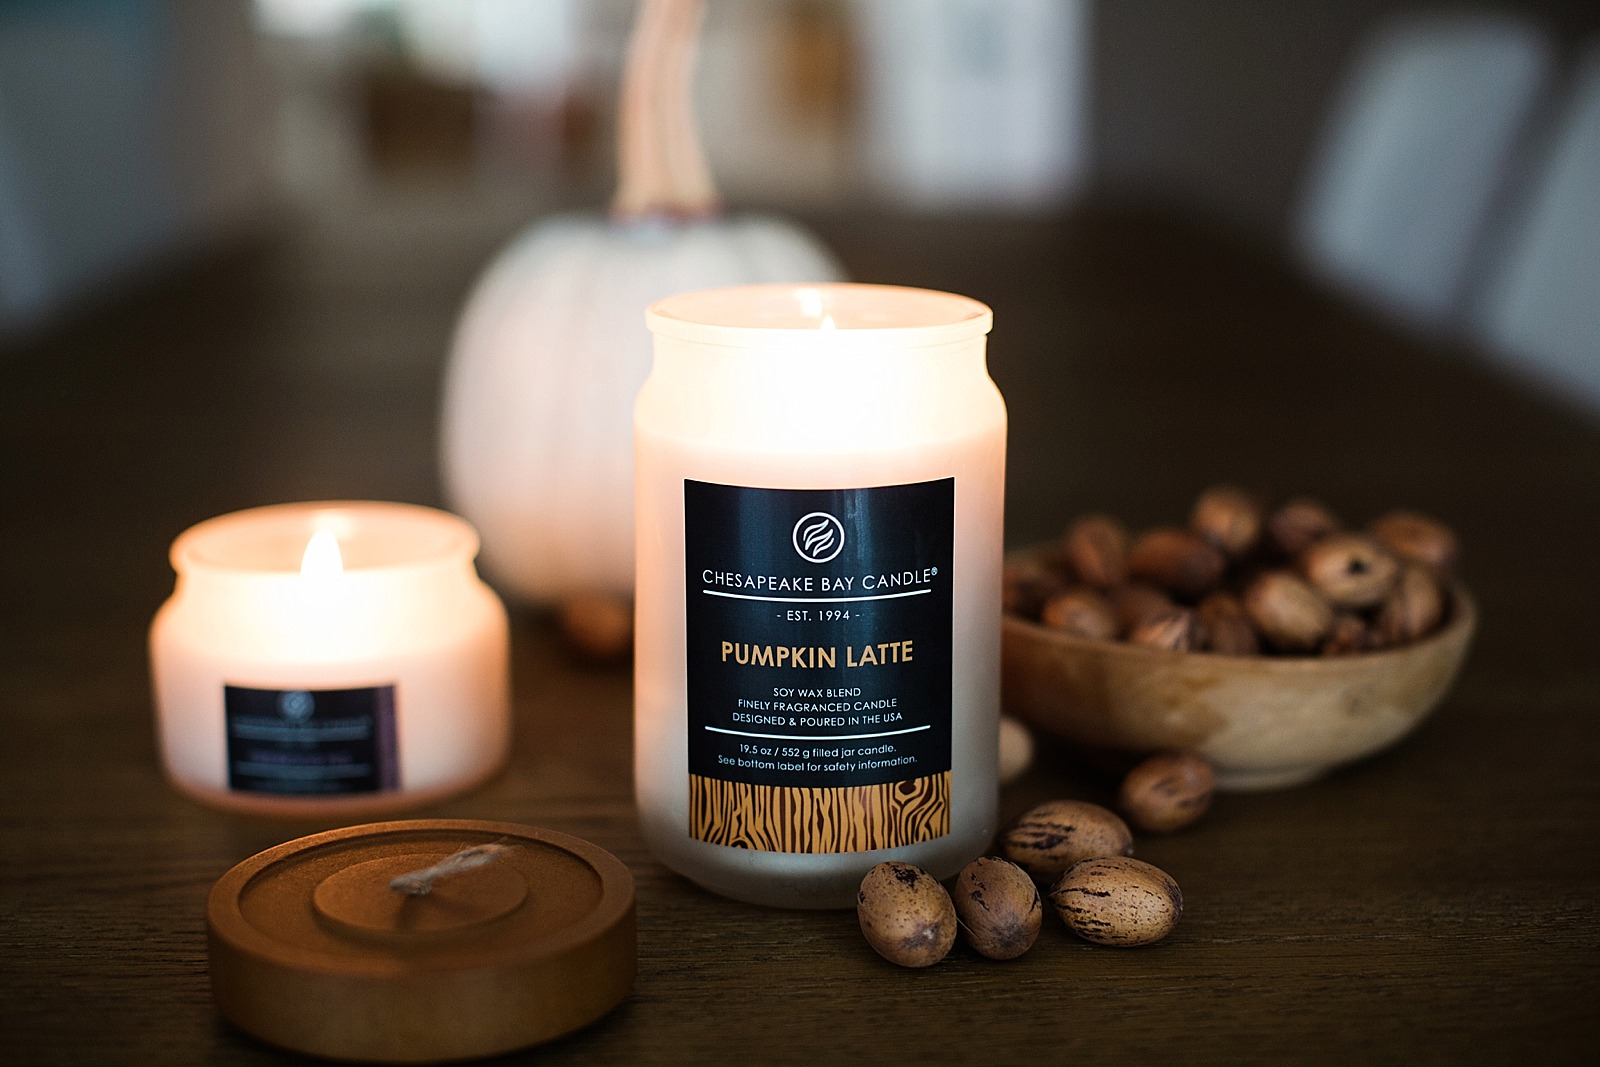 chesapeake-bay-candle-heritage-collection-best-fall-winter-holiday-candles-soy-mix-essential-oils-3